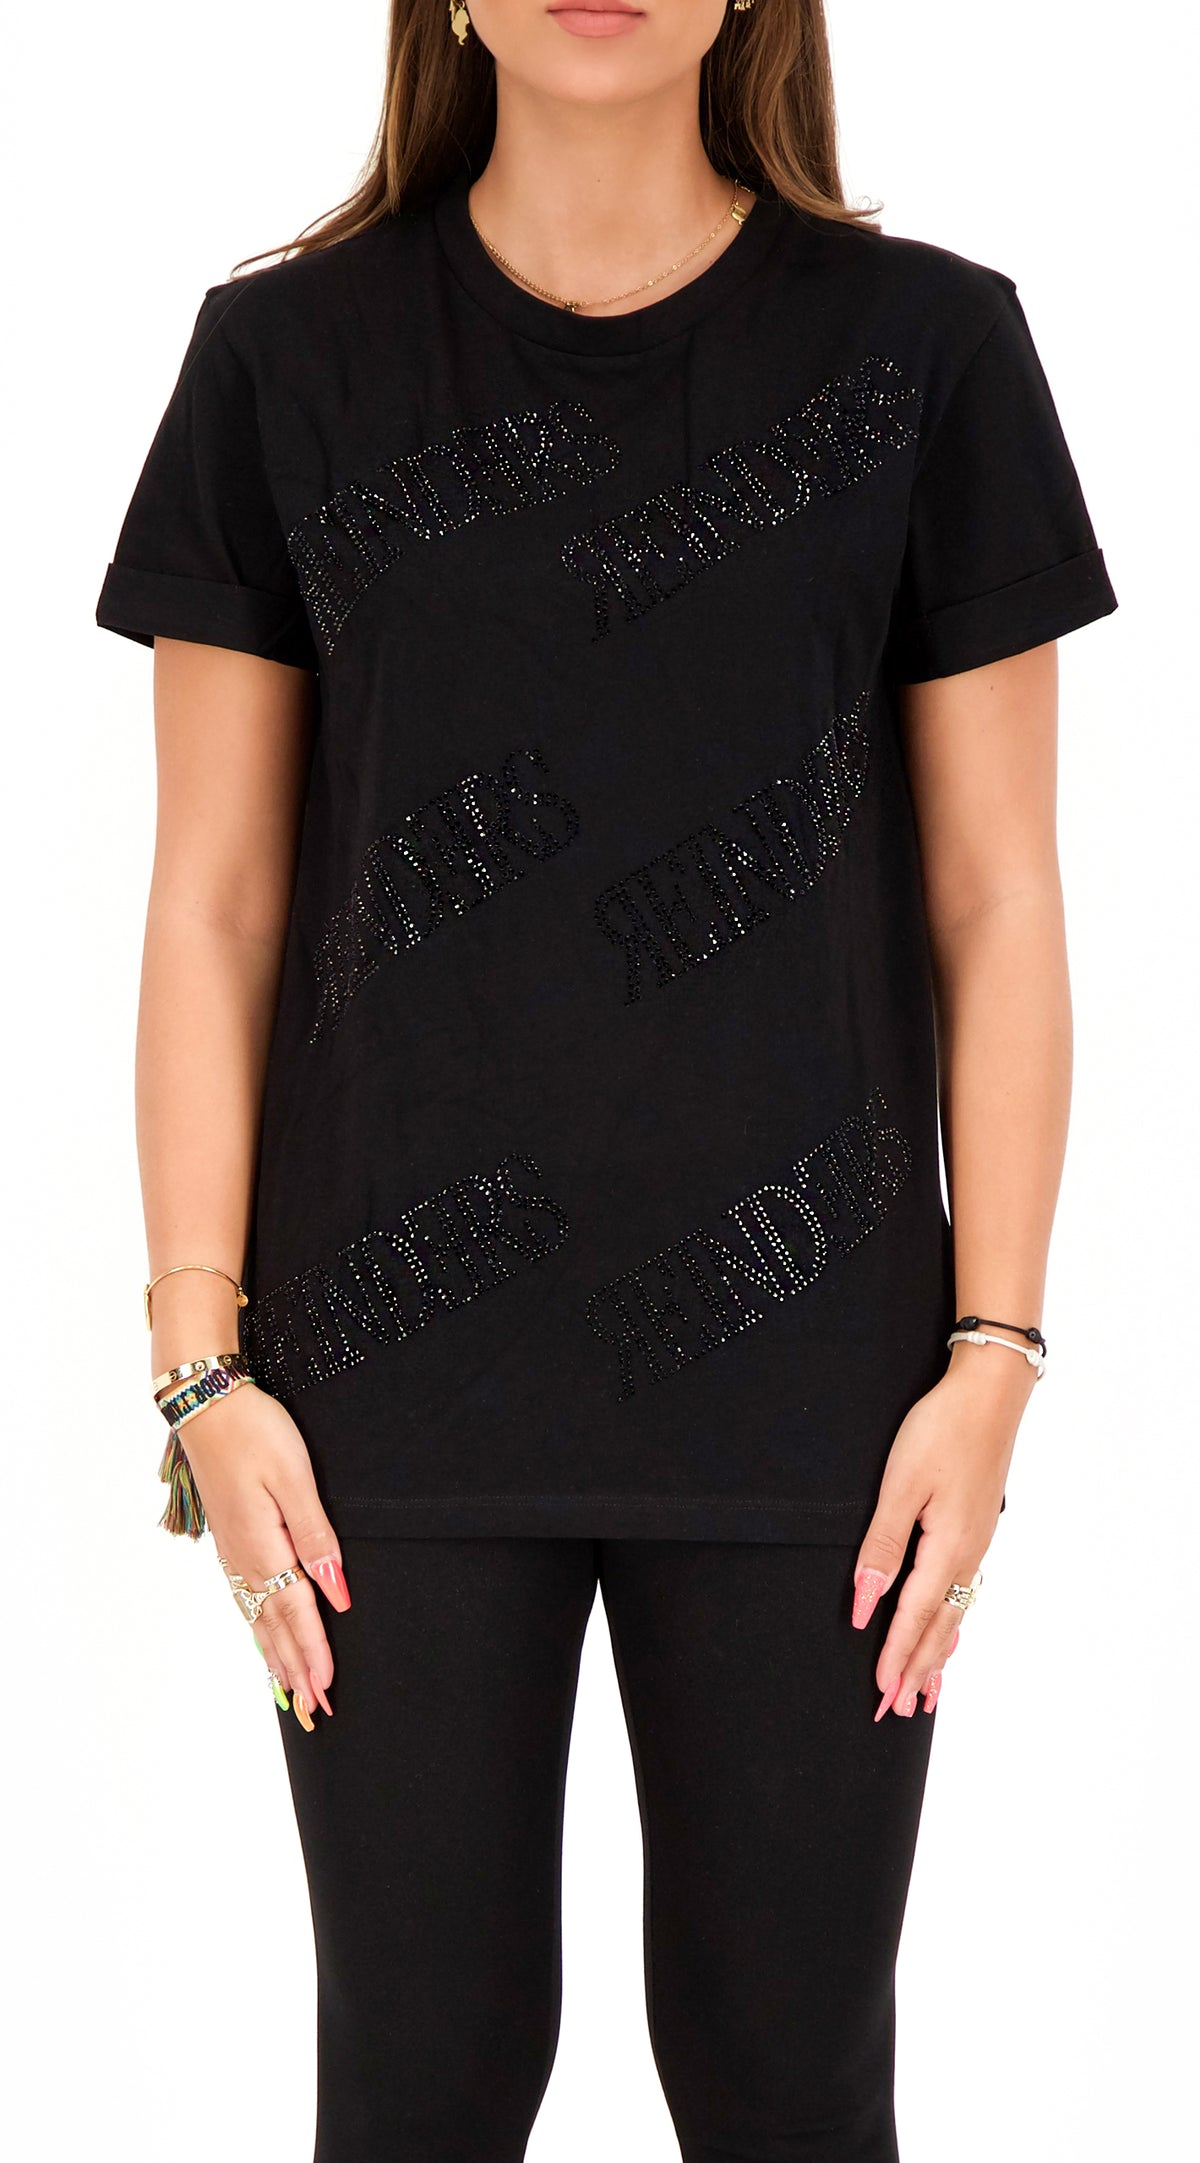 Reinders All Over Print - Black